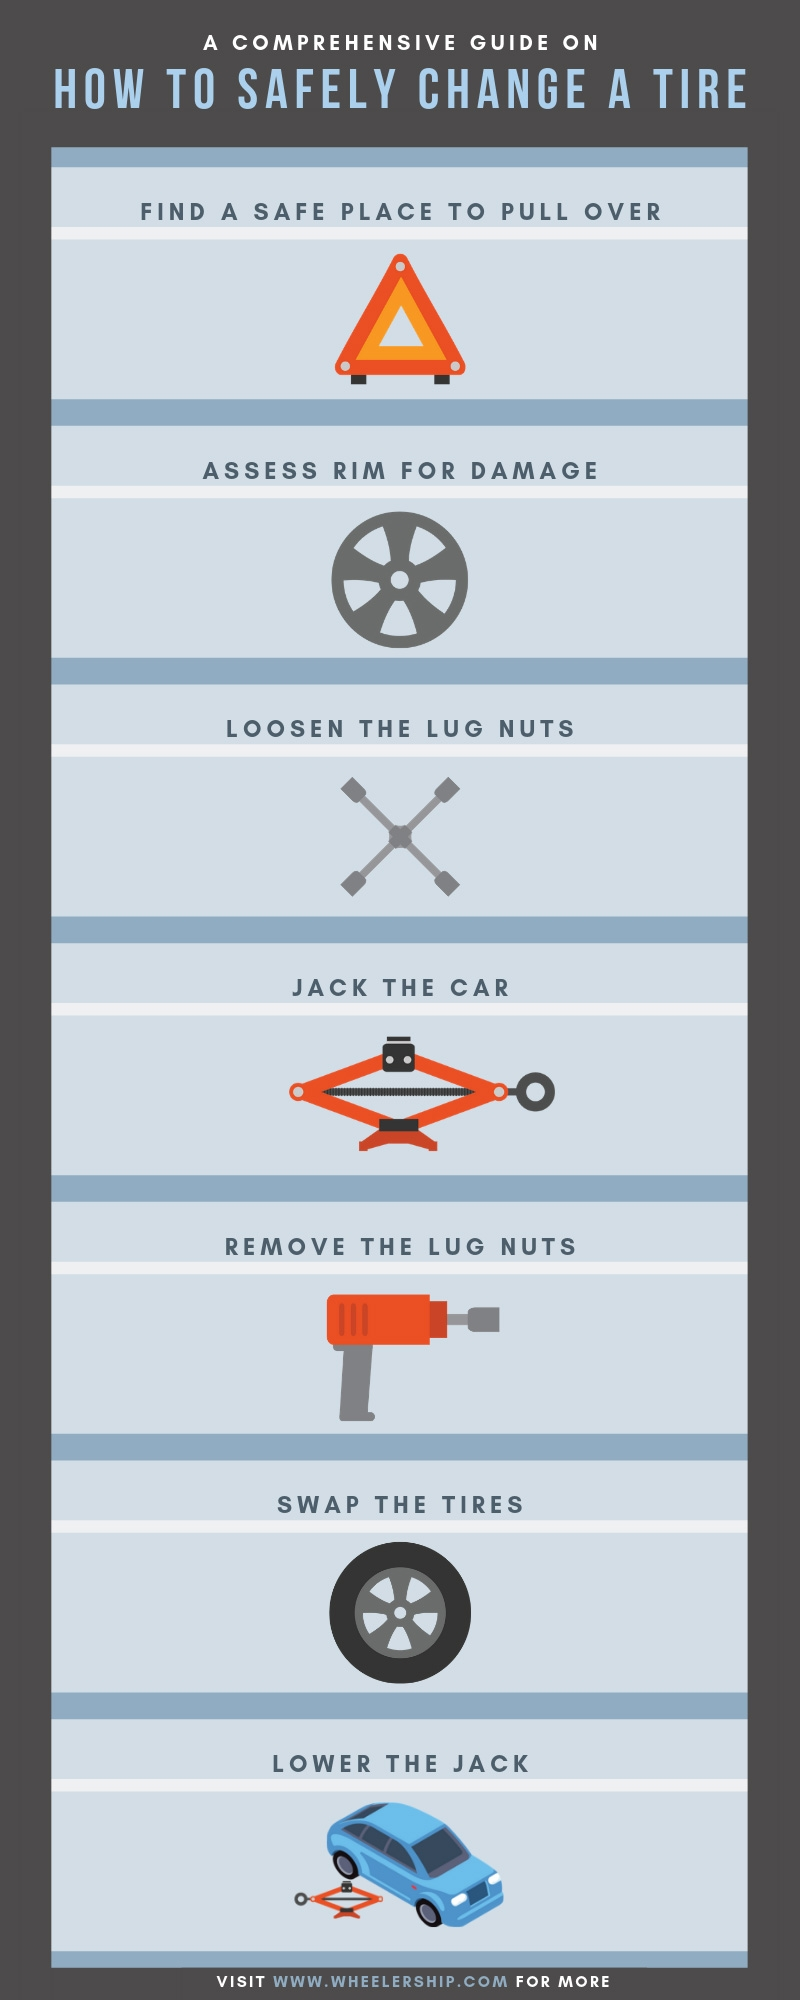 A Comprehensive Guide on How to Safely Change a Tire infographic